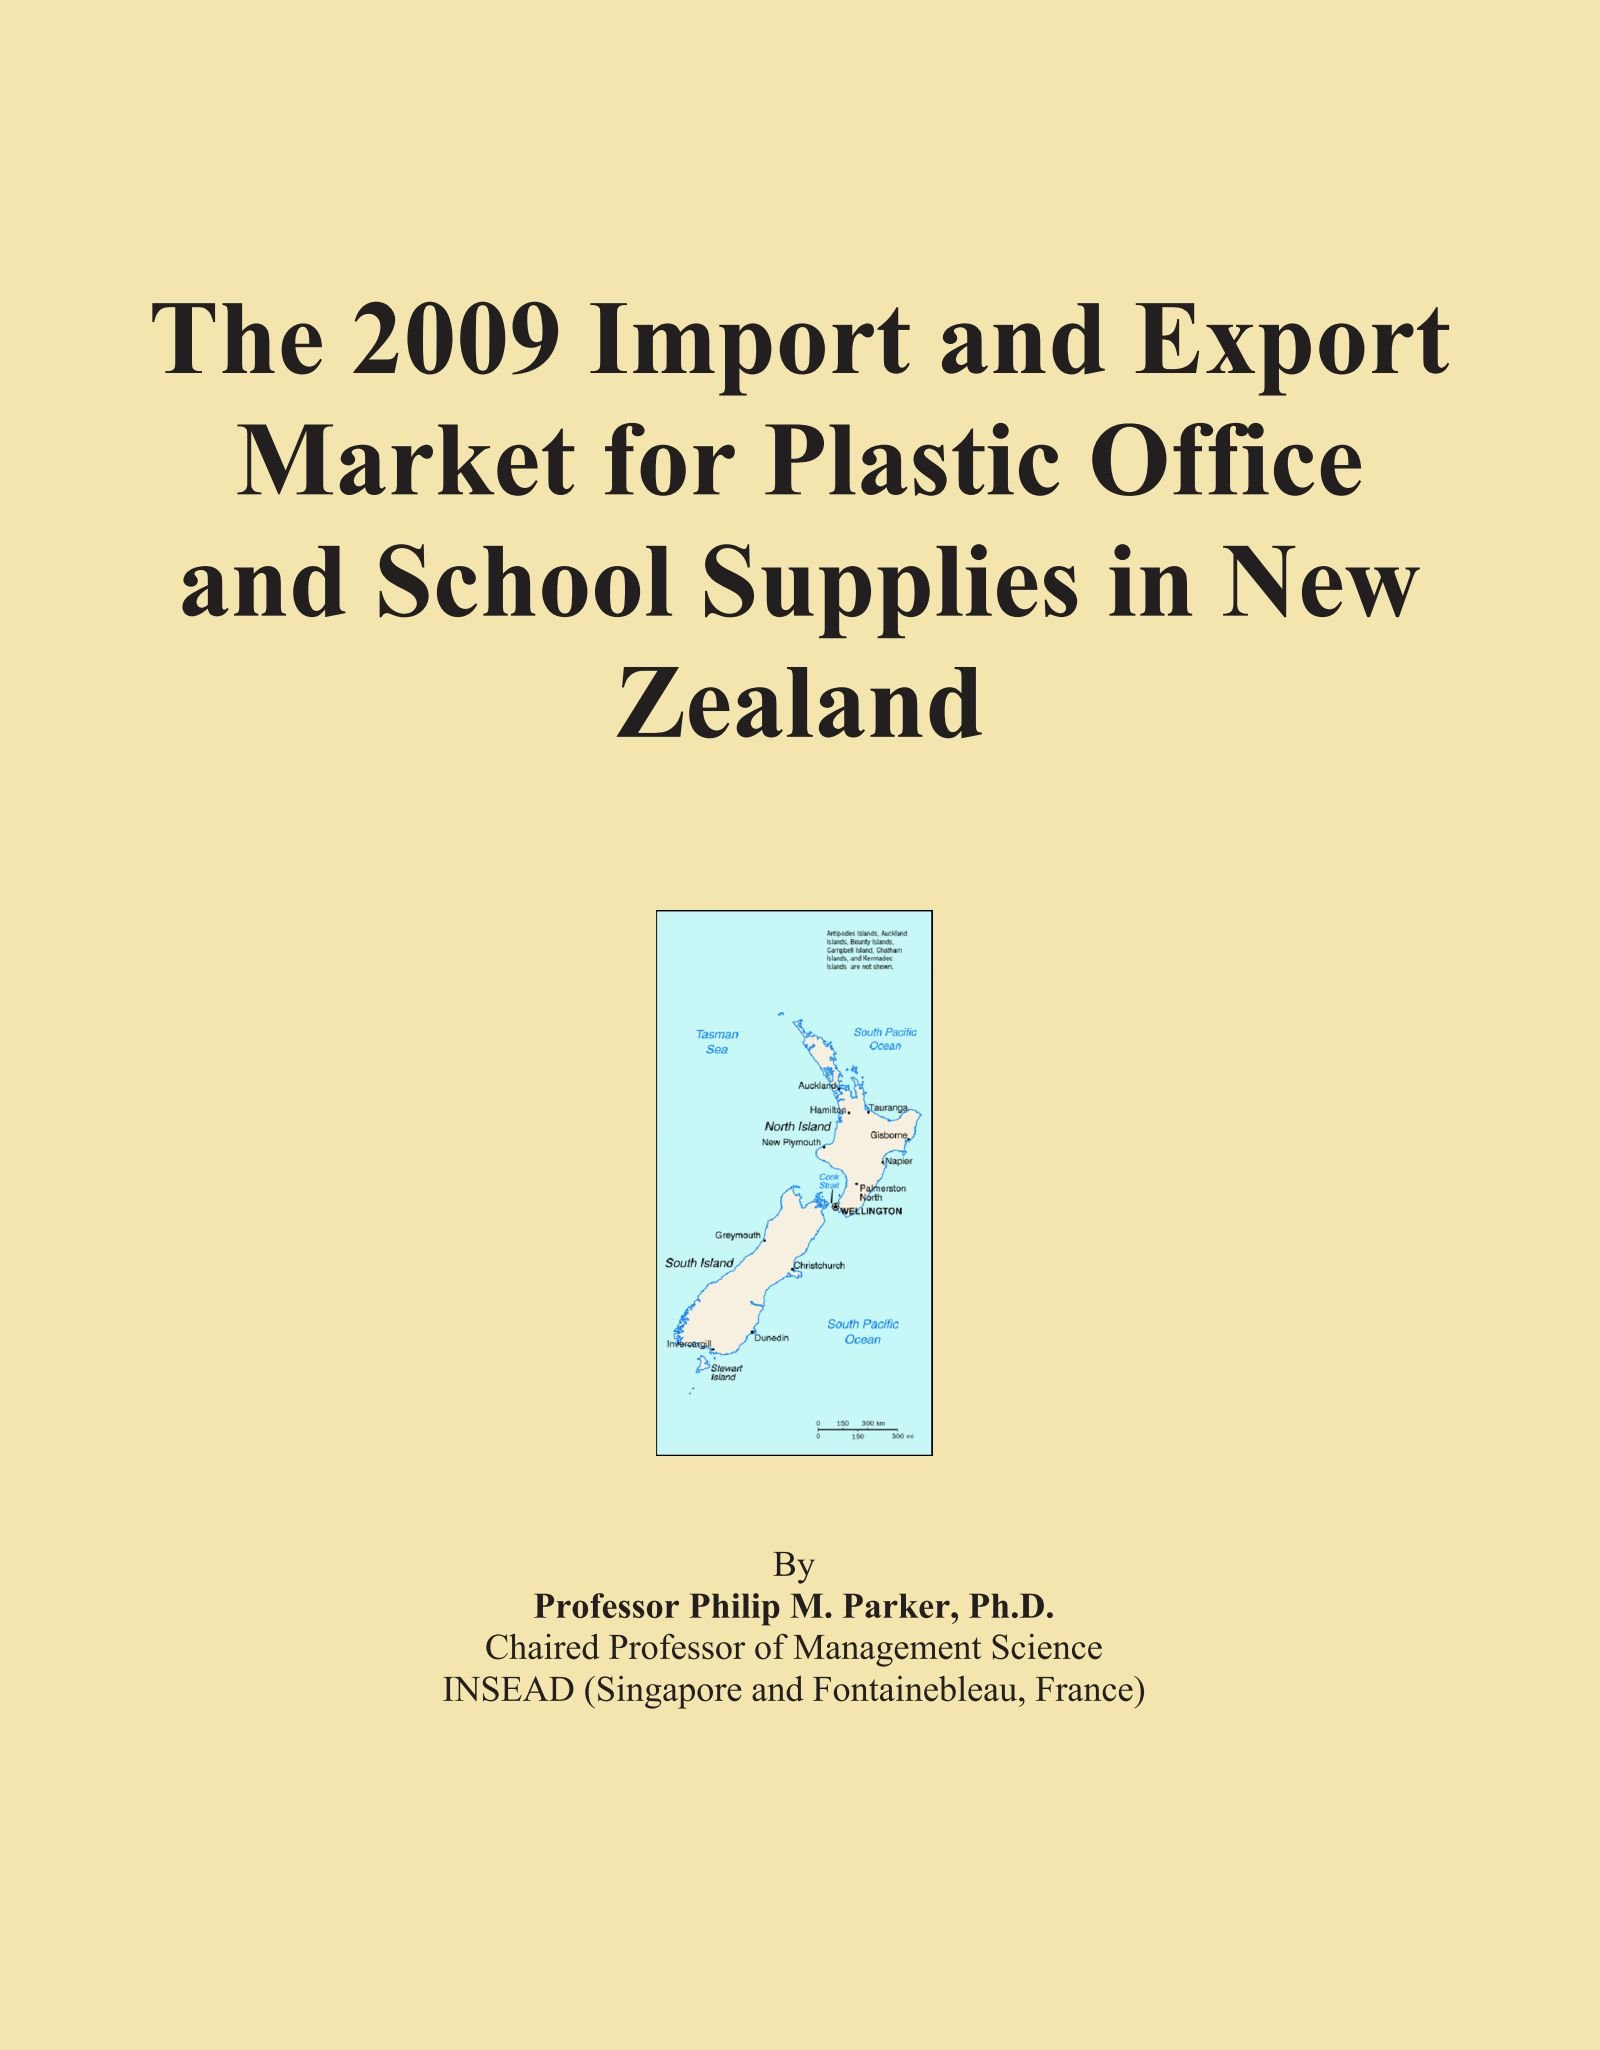 The 2009 Import and Export Market for Plastic Office and School Supplies in New Zealand pdf